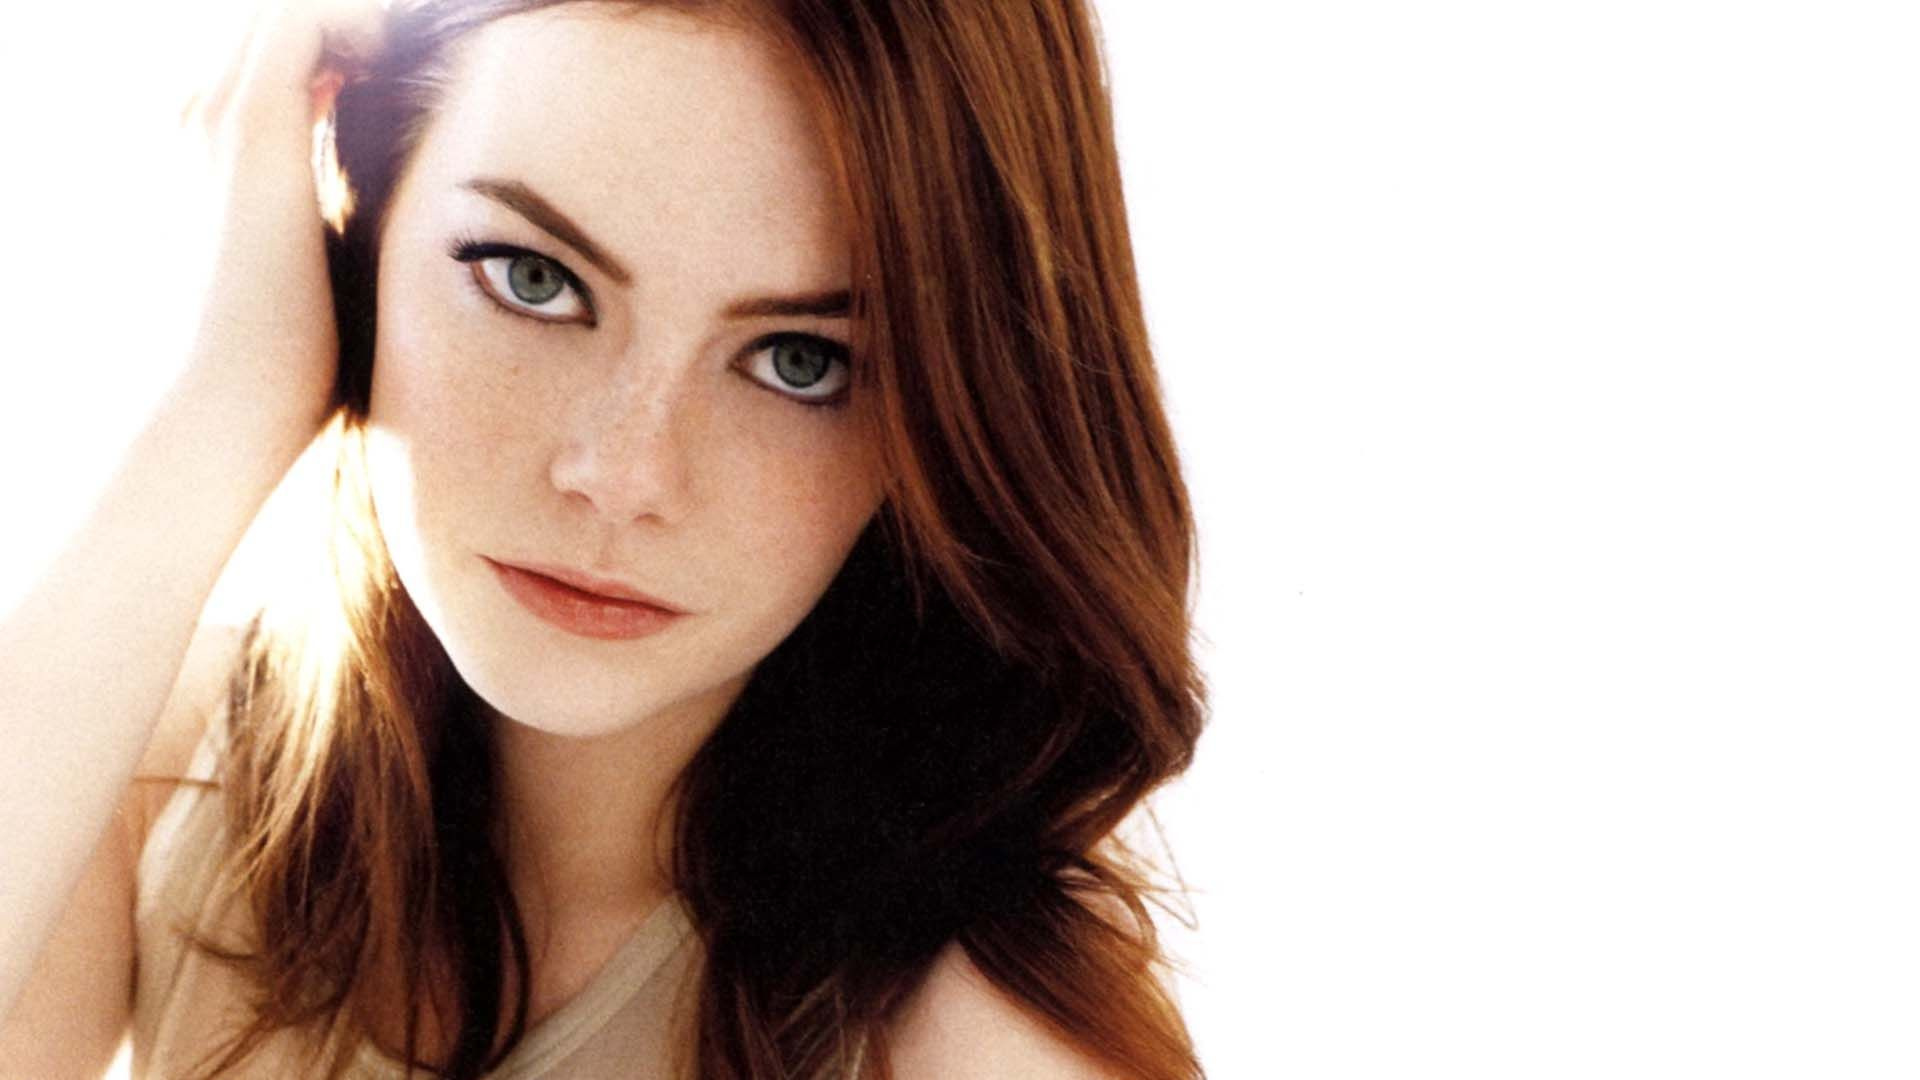 Emma Stone HD Wallpaper #3